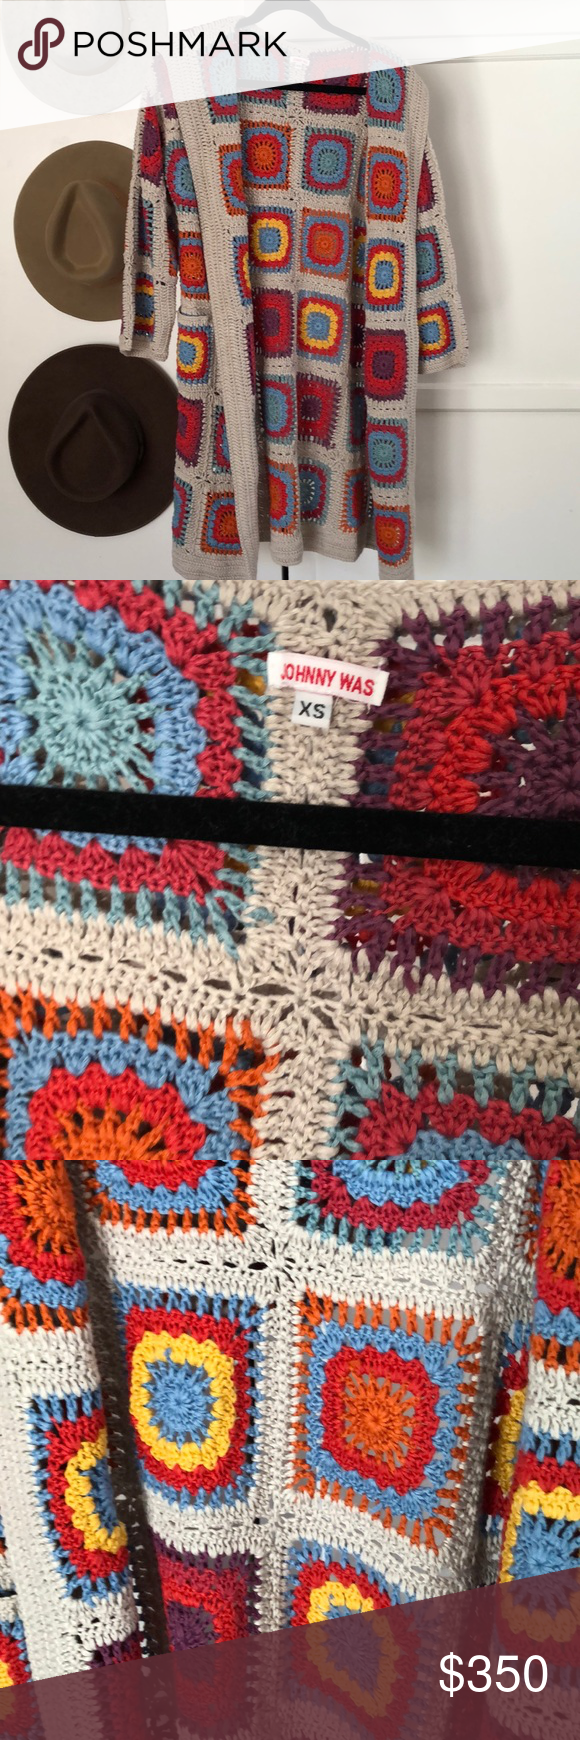 Johnny Was In 2020 Johnny Was Crochet Jacket Johnny